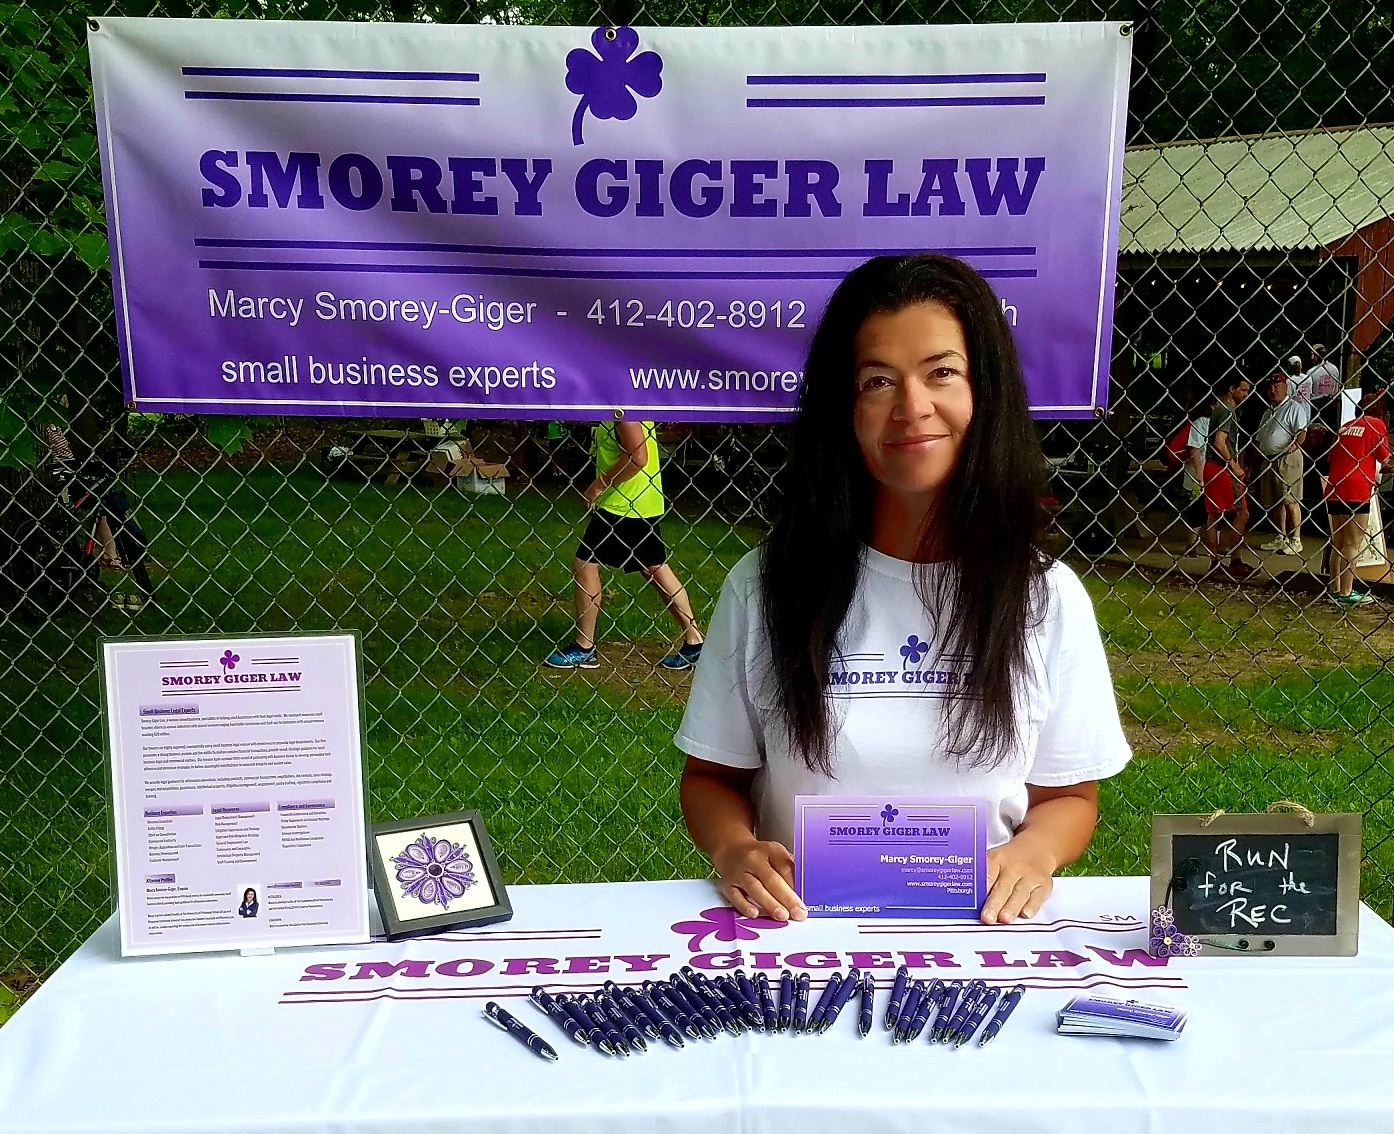 Smorey Giger Law sponsored The McKnight Village Civic Association - Run for the Rec